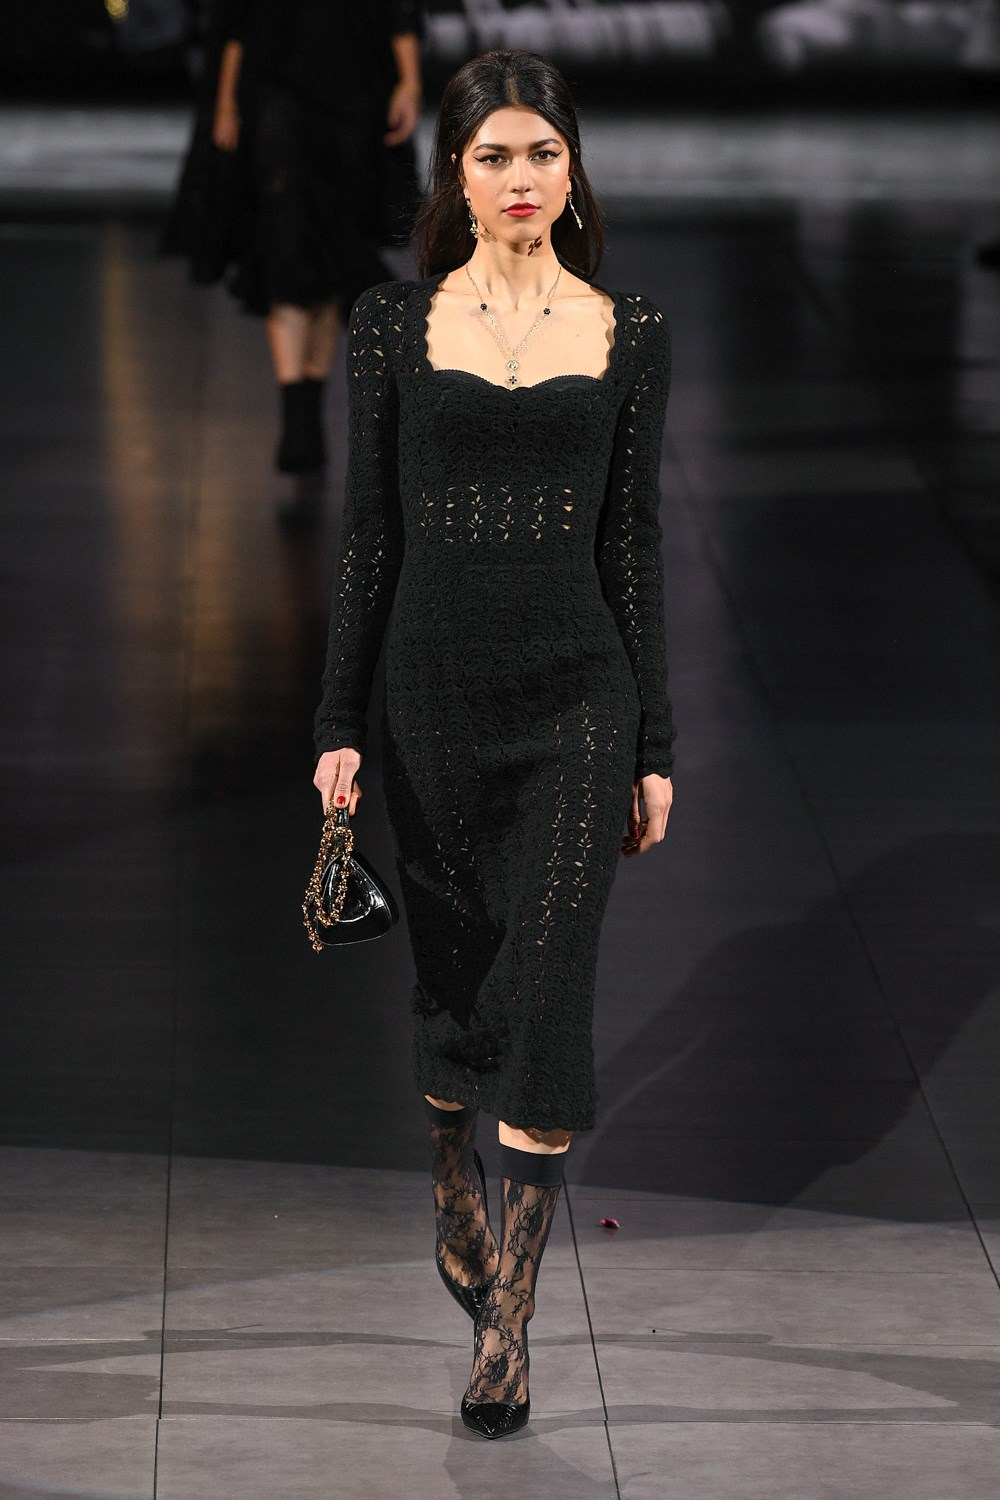 Dolce & Gabbana Fall 2020 Fashion Show Photos